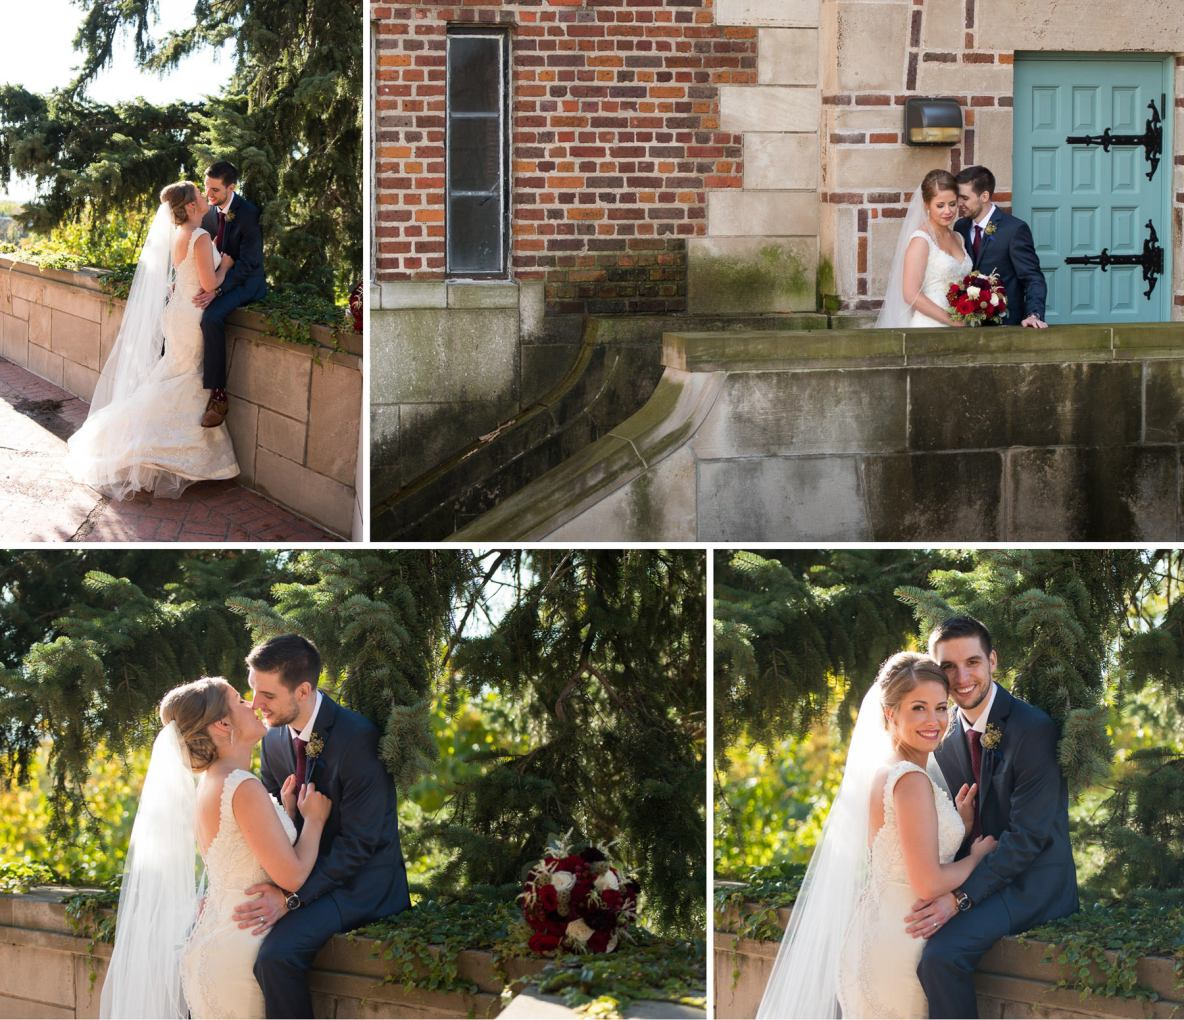 Bride and groom photos on wedding day outside in nature with brick building in background.